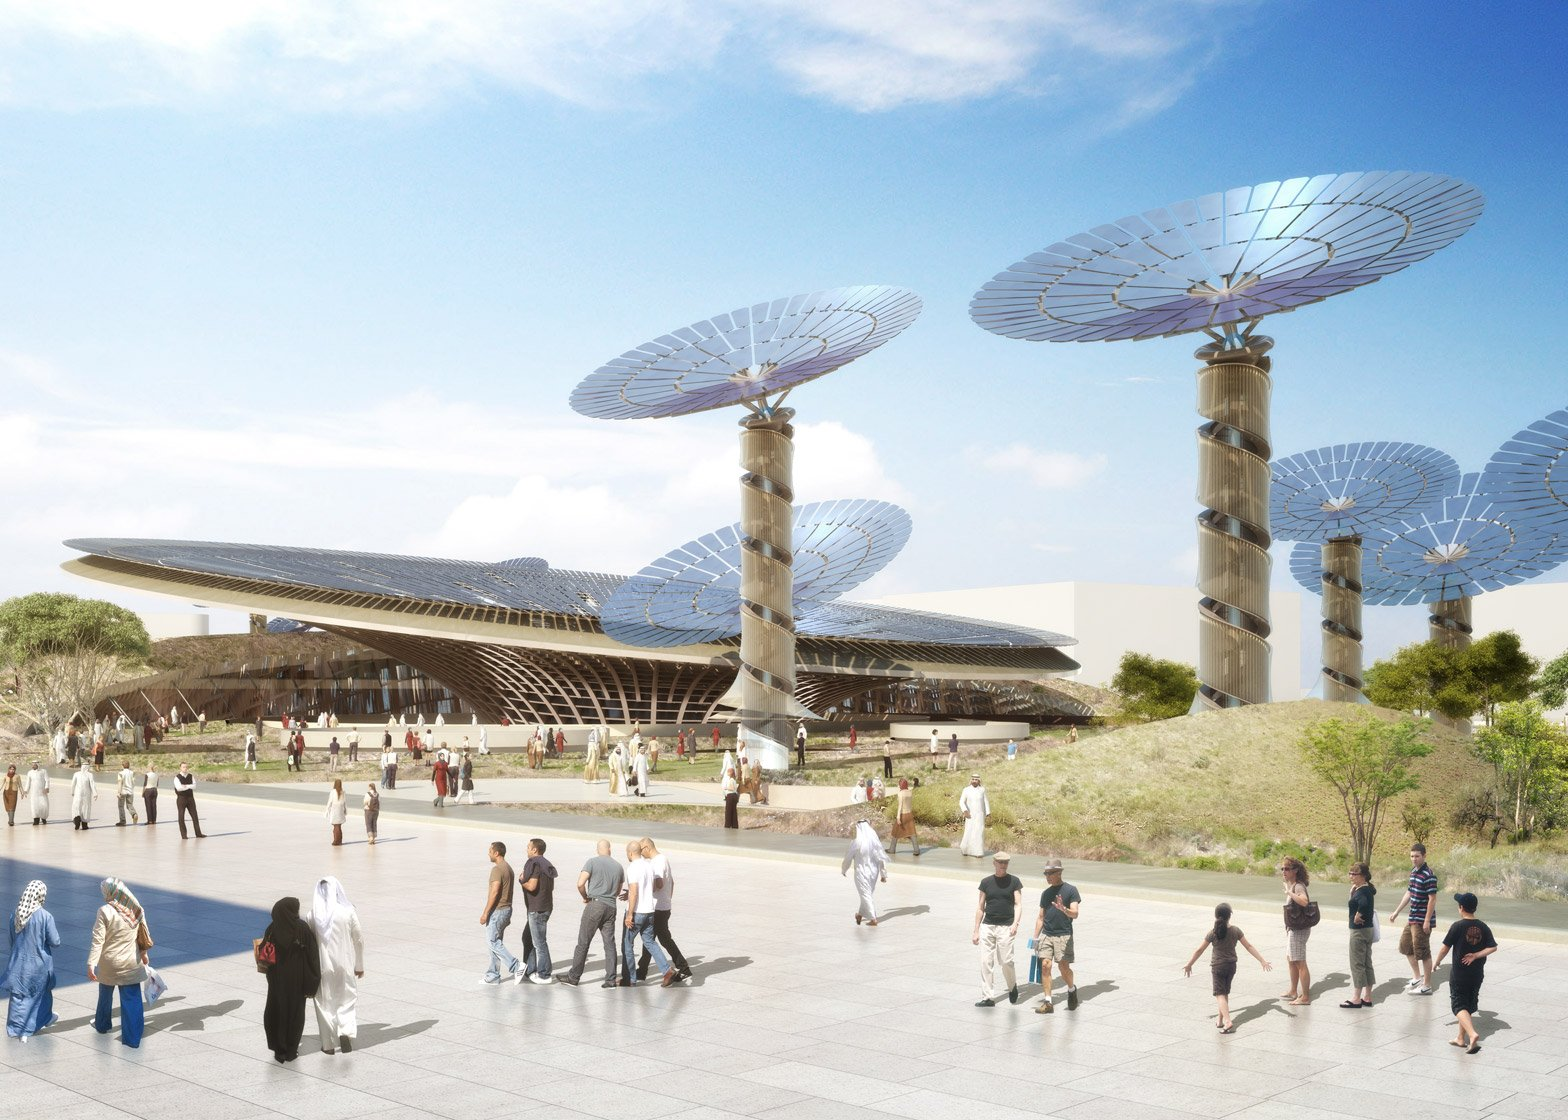 Grimshaw Architect's Sustainability Pavilion from the Dubai Expo 2020